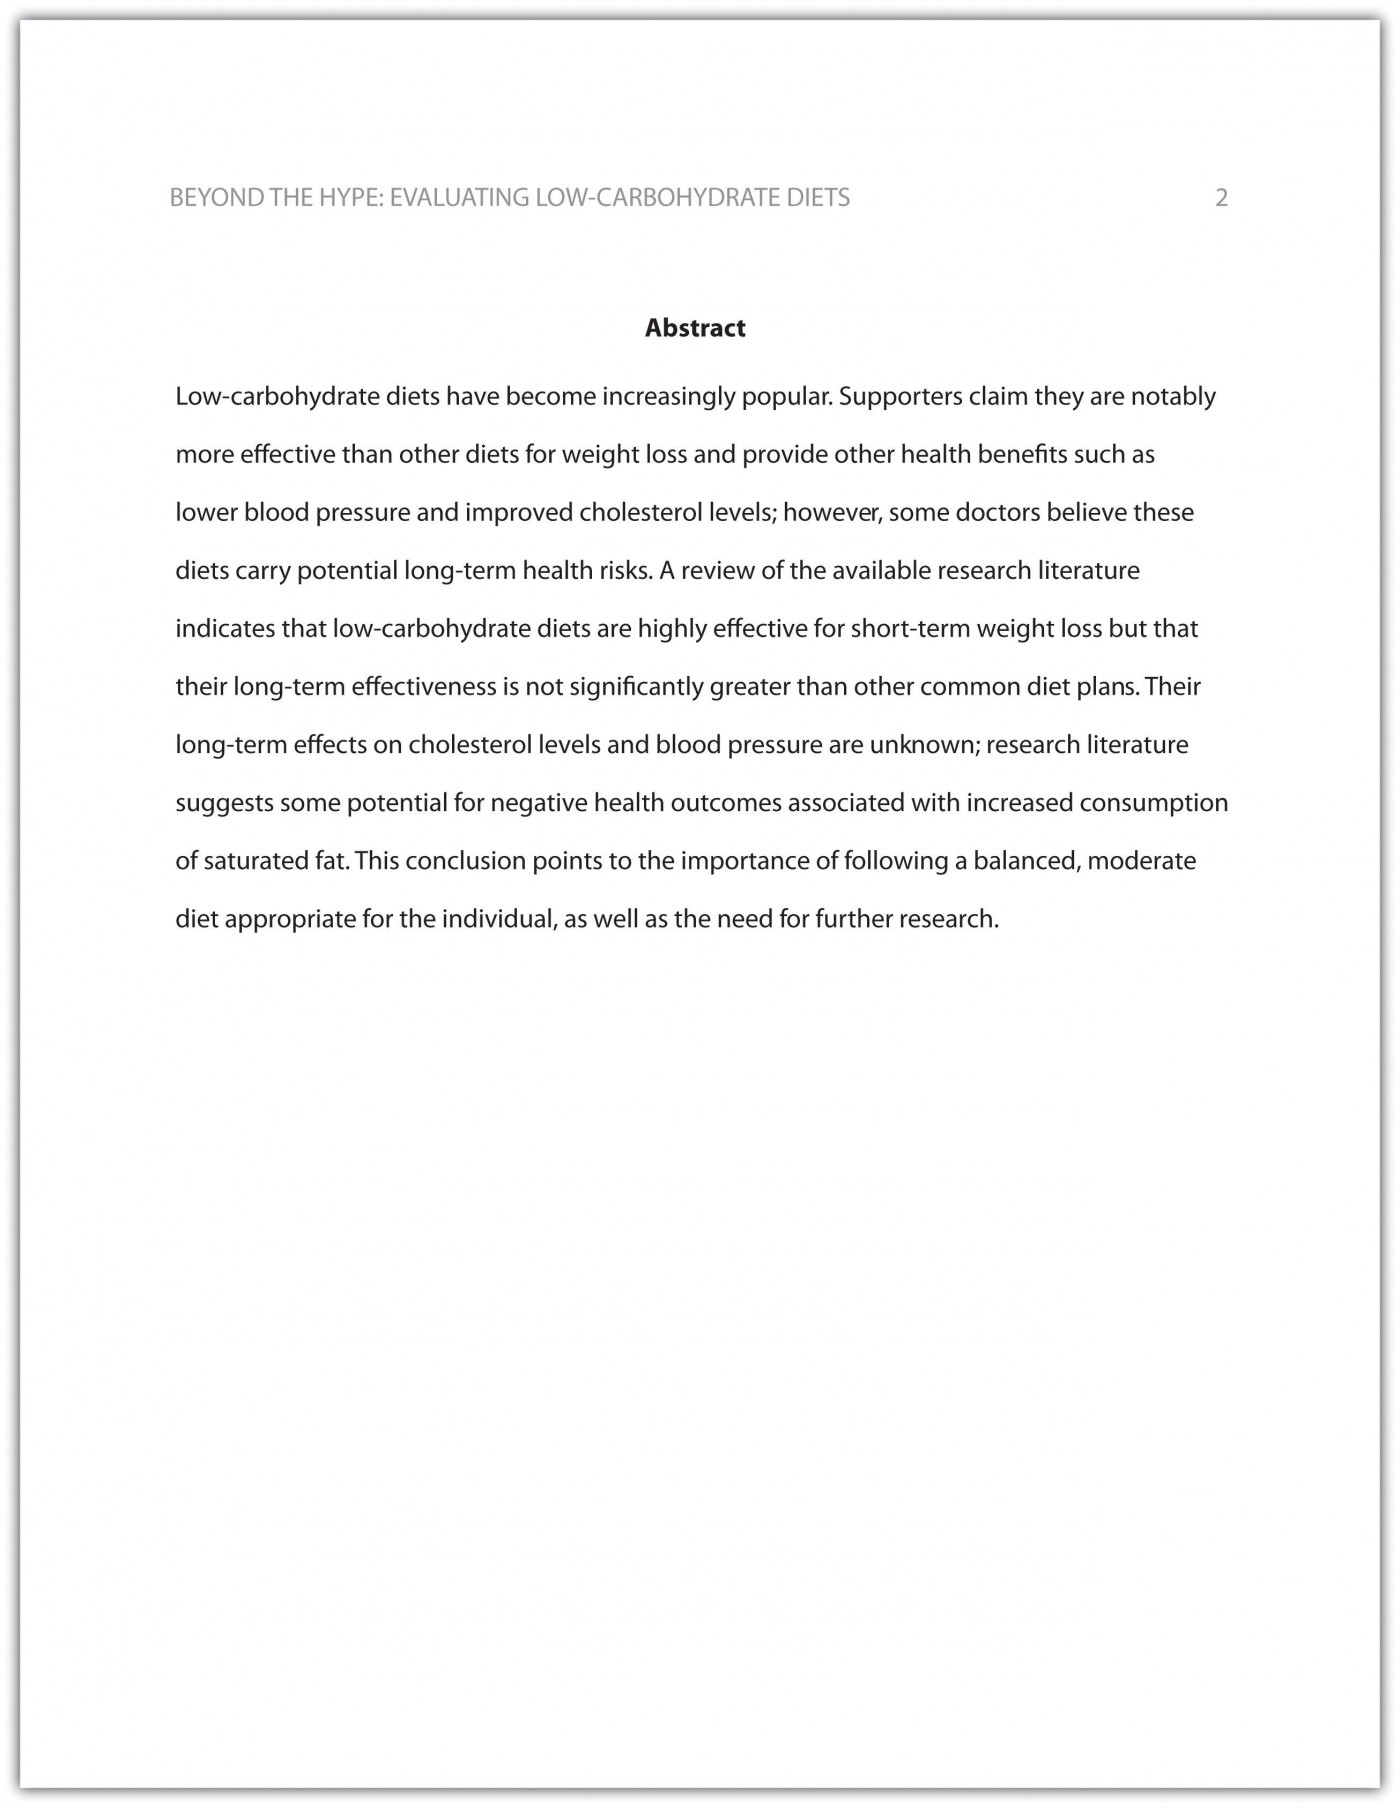 014 Research Paper College English Incredible Ideas 1400